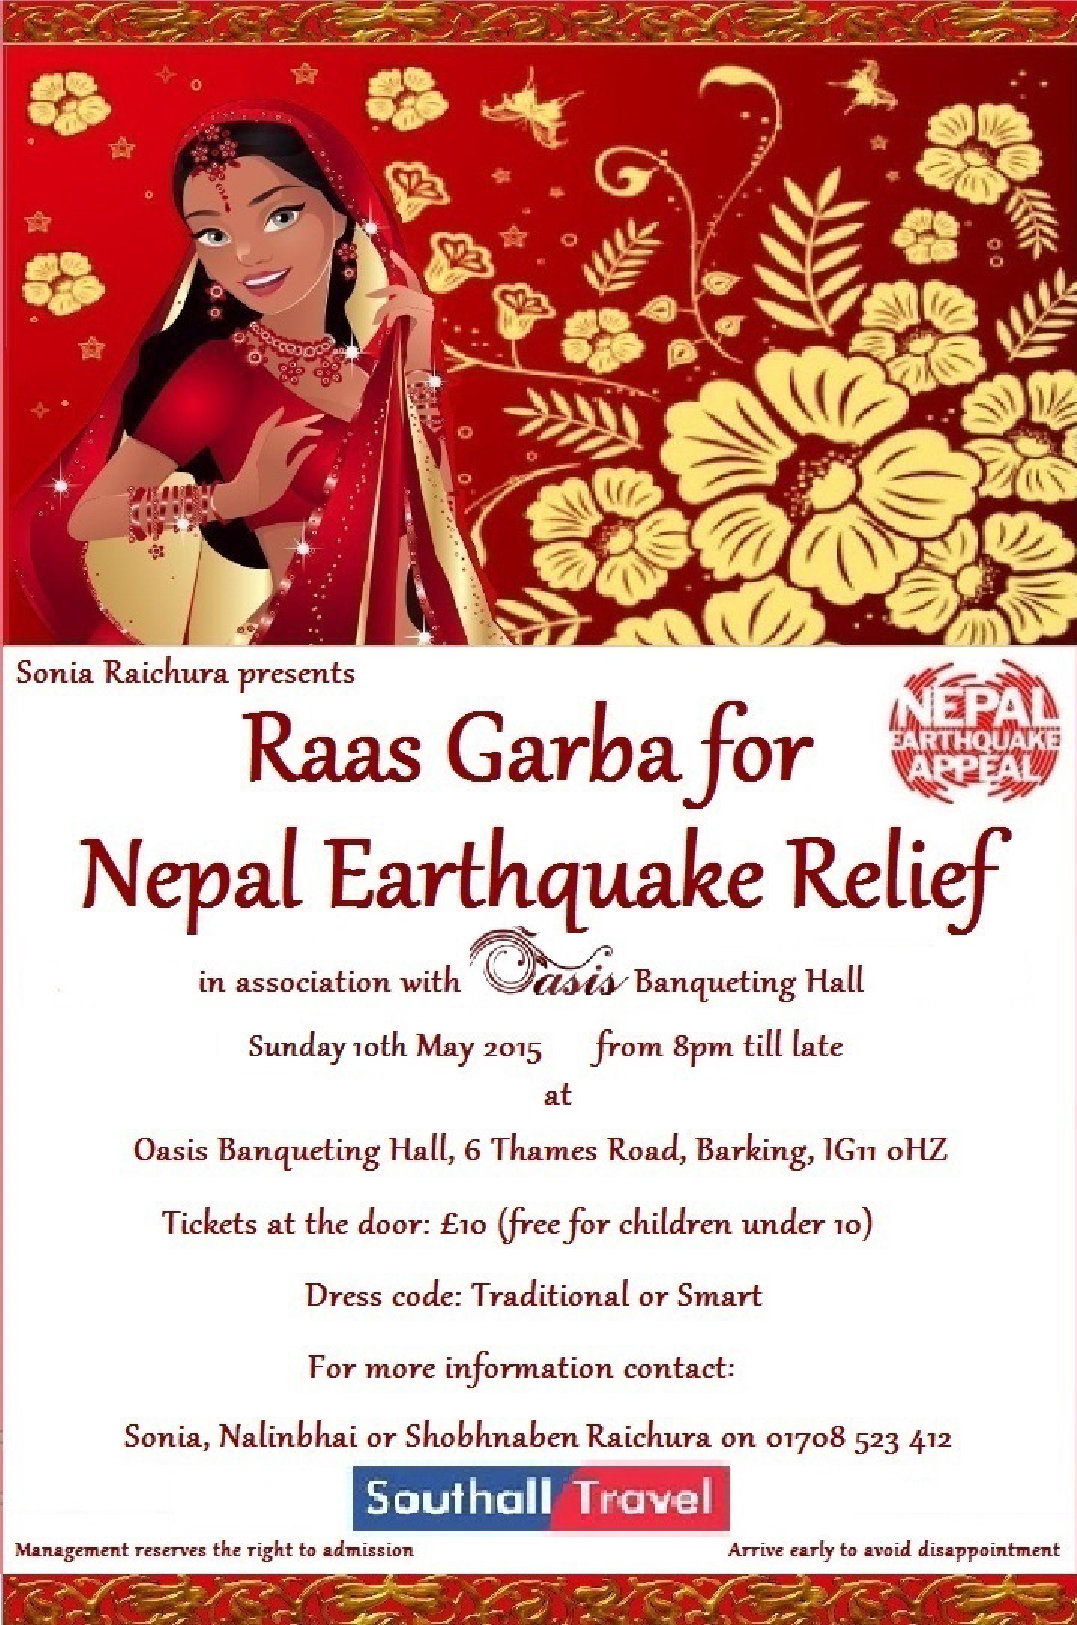 Southall Travel Sponsors Raas Garba for Nepal Earthquake Rel